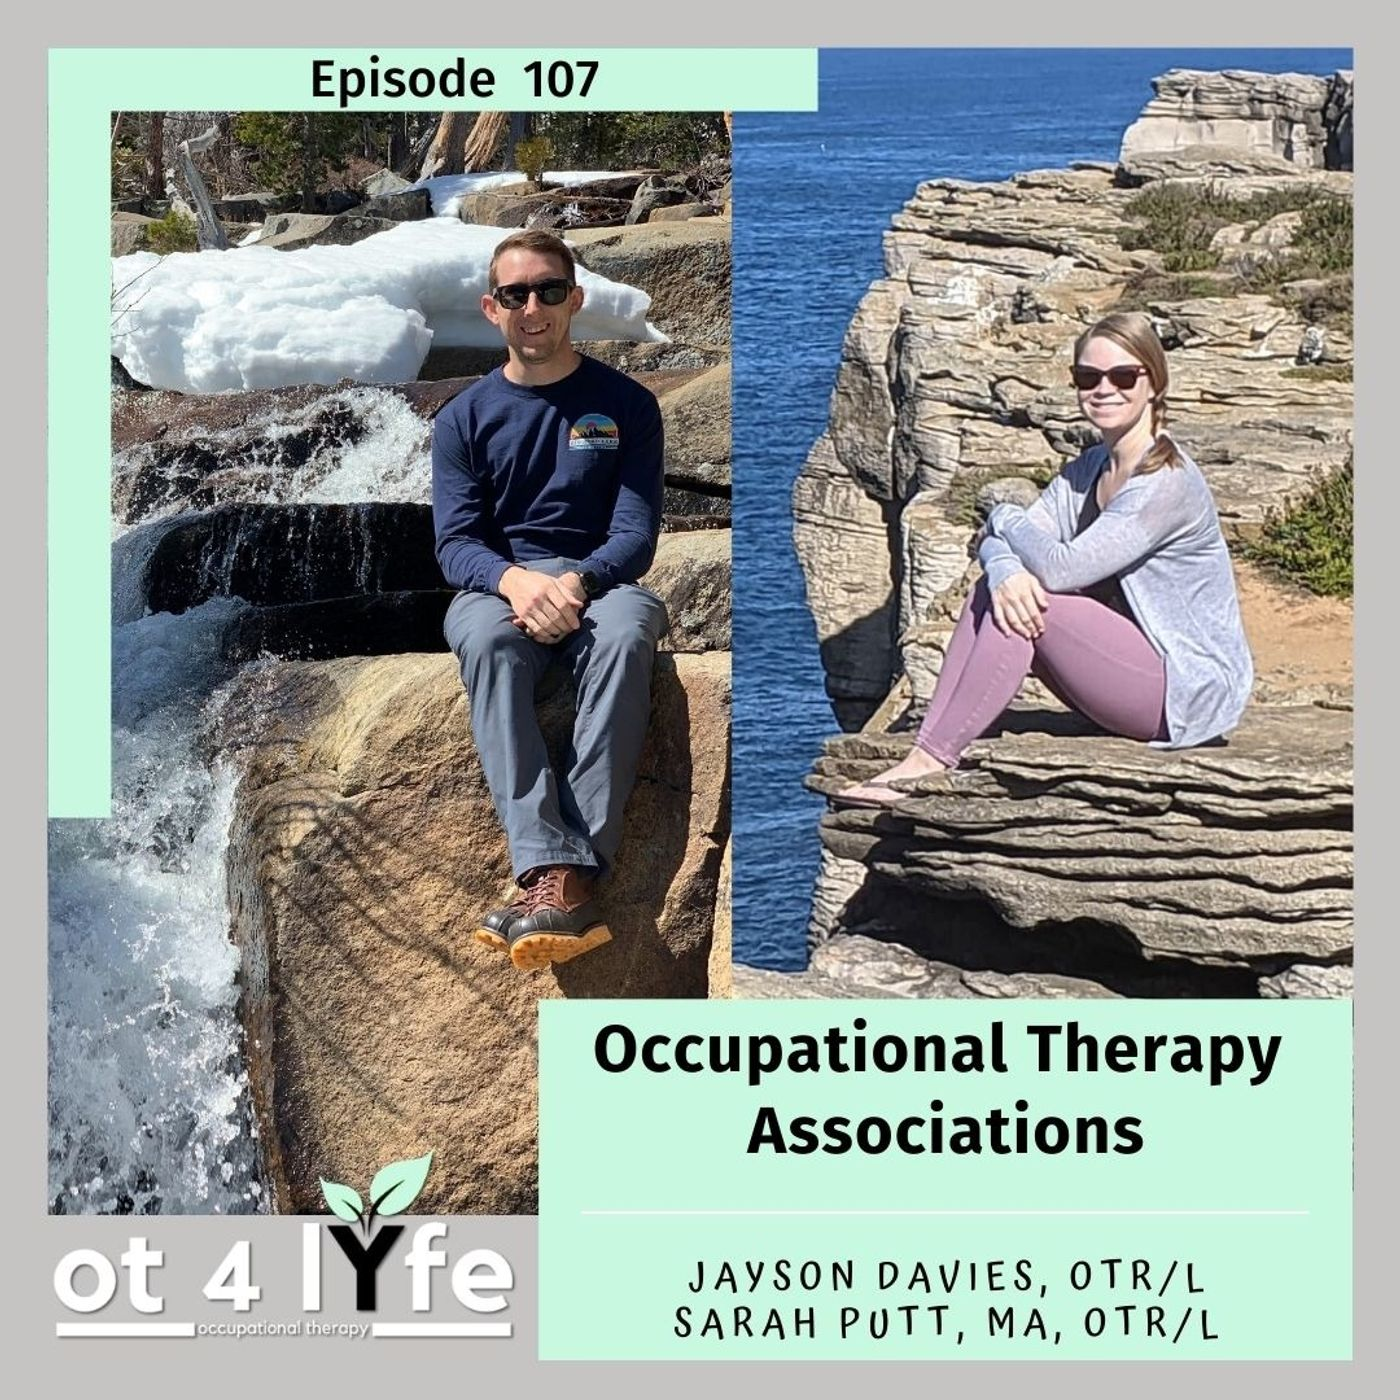 Occupational Therapy Associations